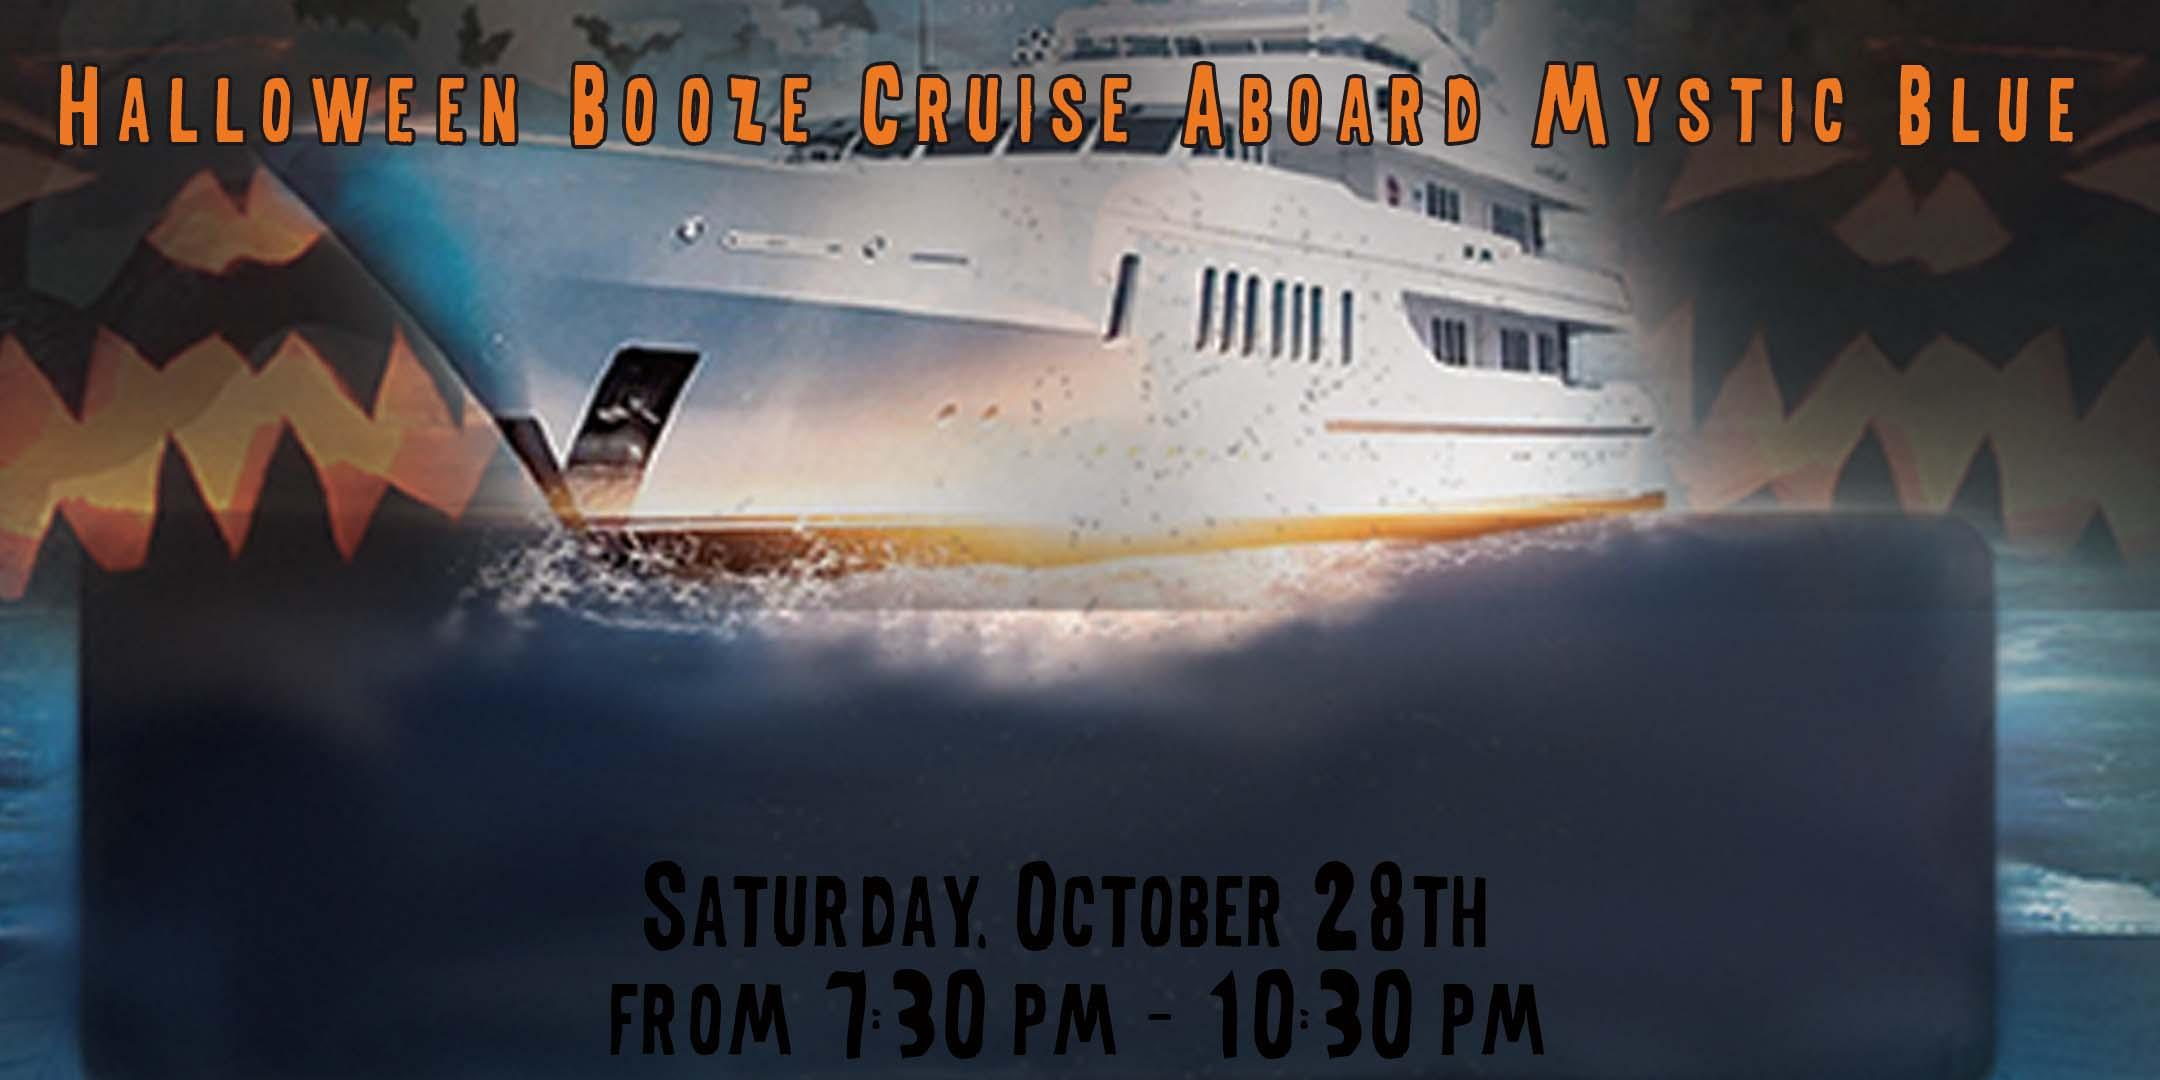 Yacht Party Chicago's Halloween Booze Cruise aboard the Mystic ...